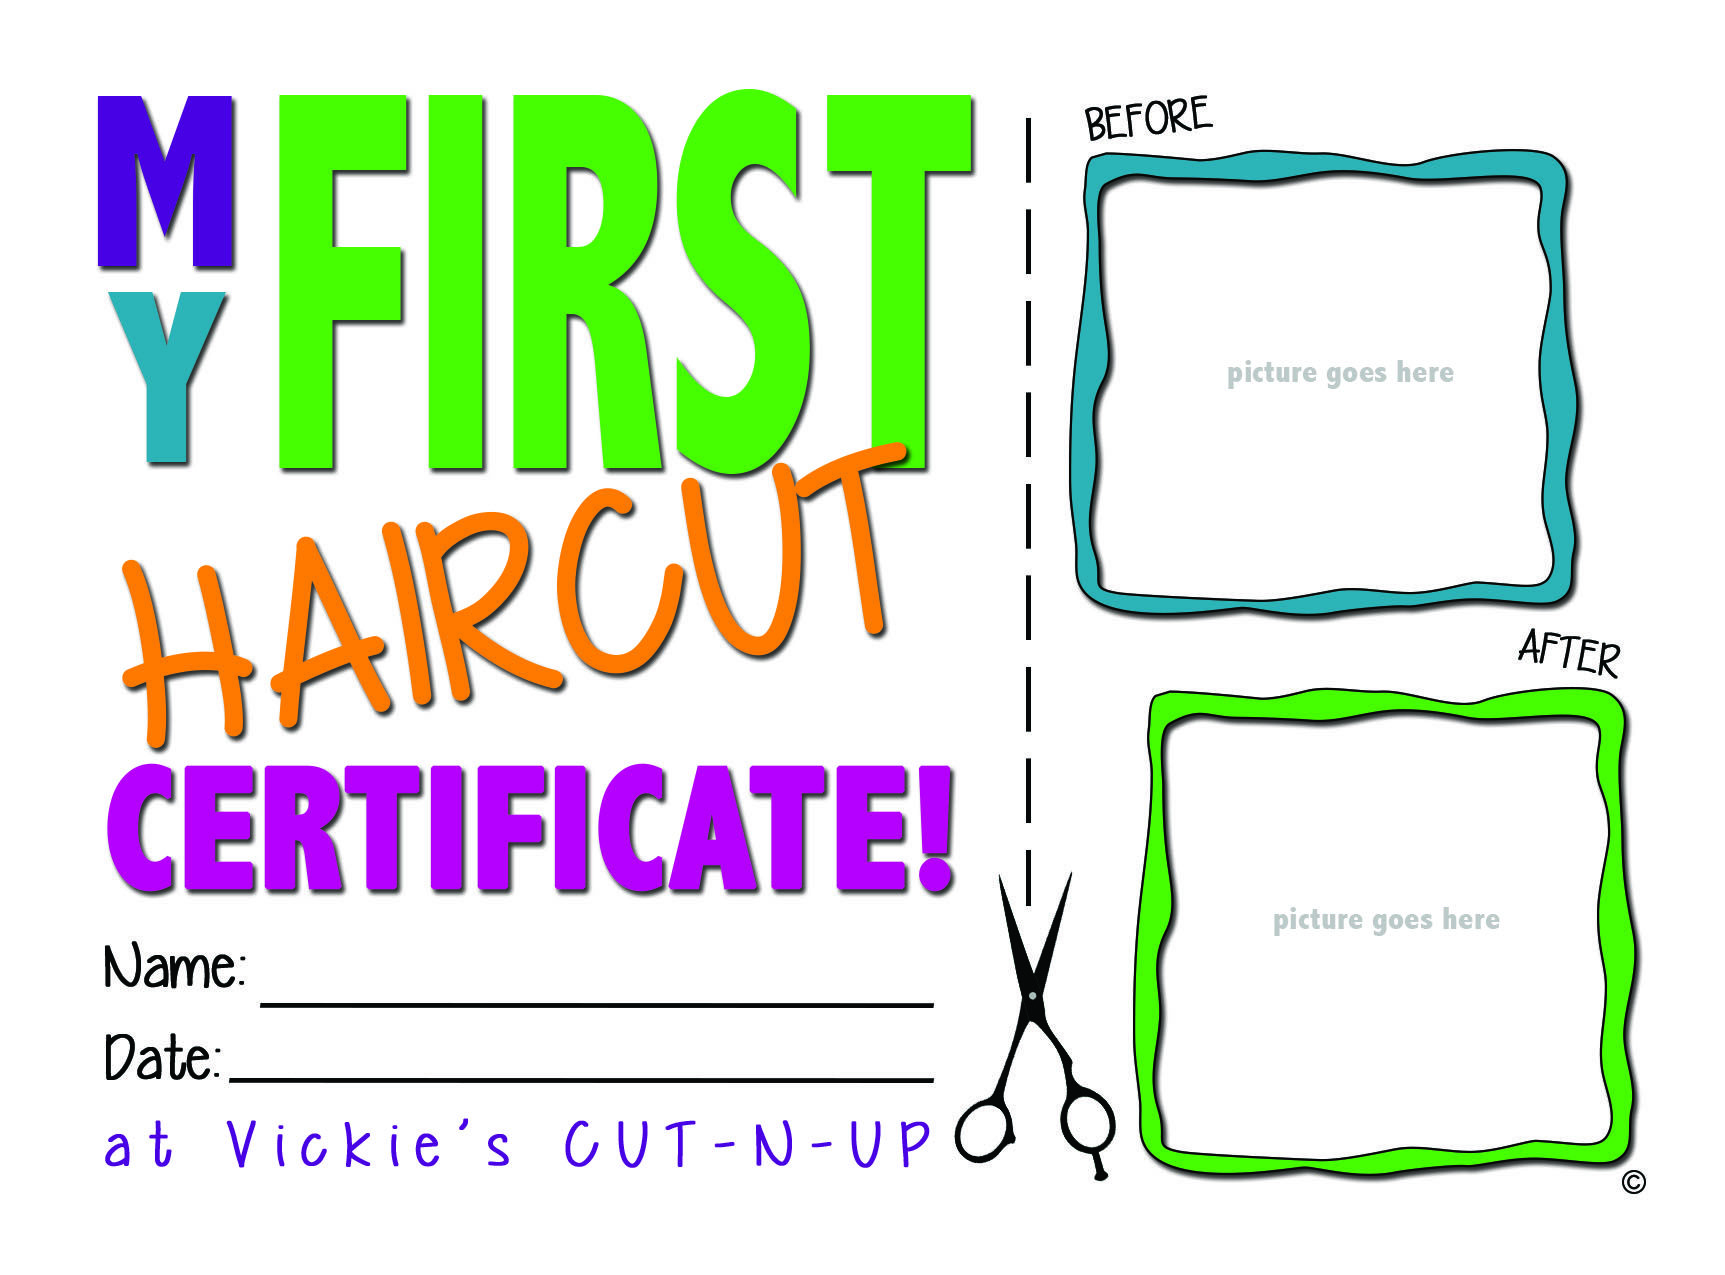 Babys first haircut certificate 25 fuhrmannmedia babys first haircut certificate 25 fuhrmannmedia babysfirsthaircut facebook yadclub Image collections